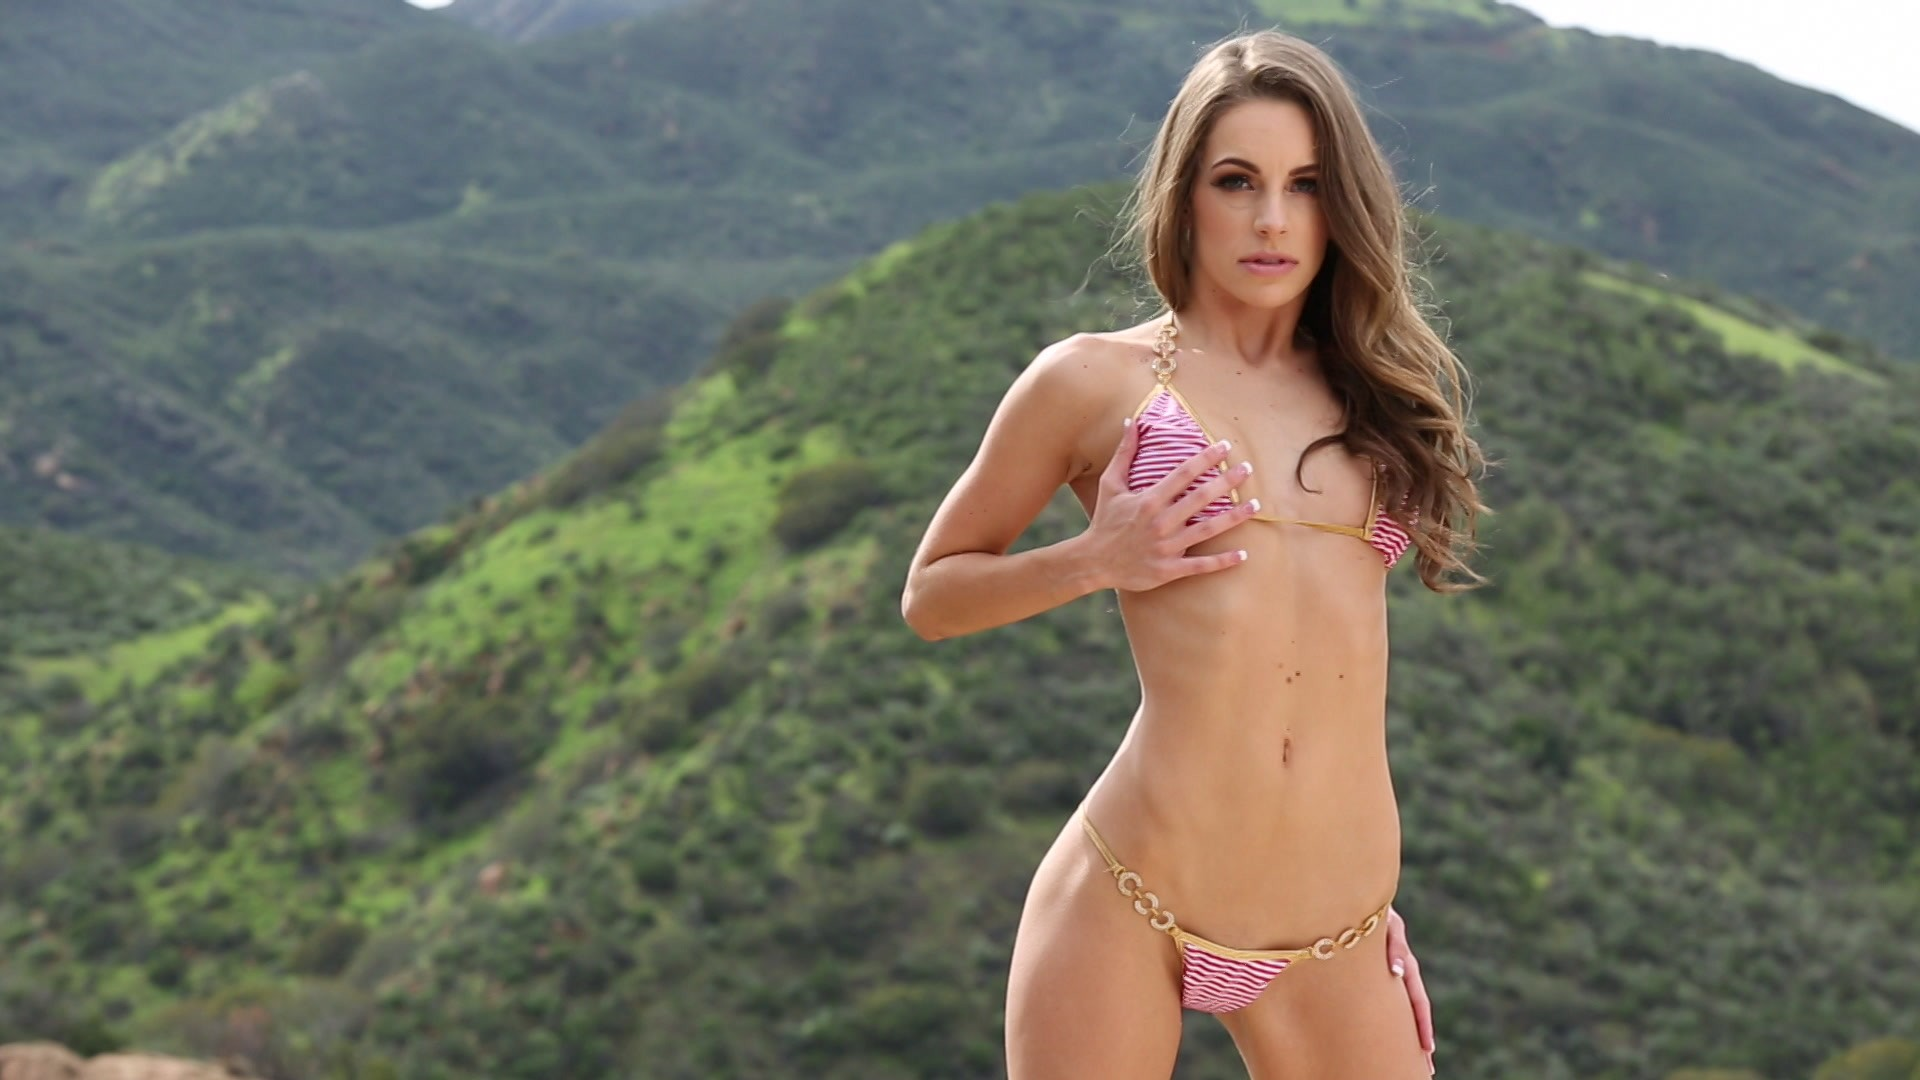 Scene with Kimmy Granger - image 7 out of 20